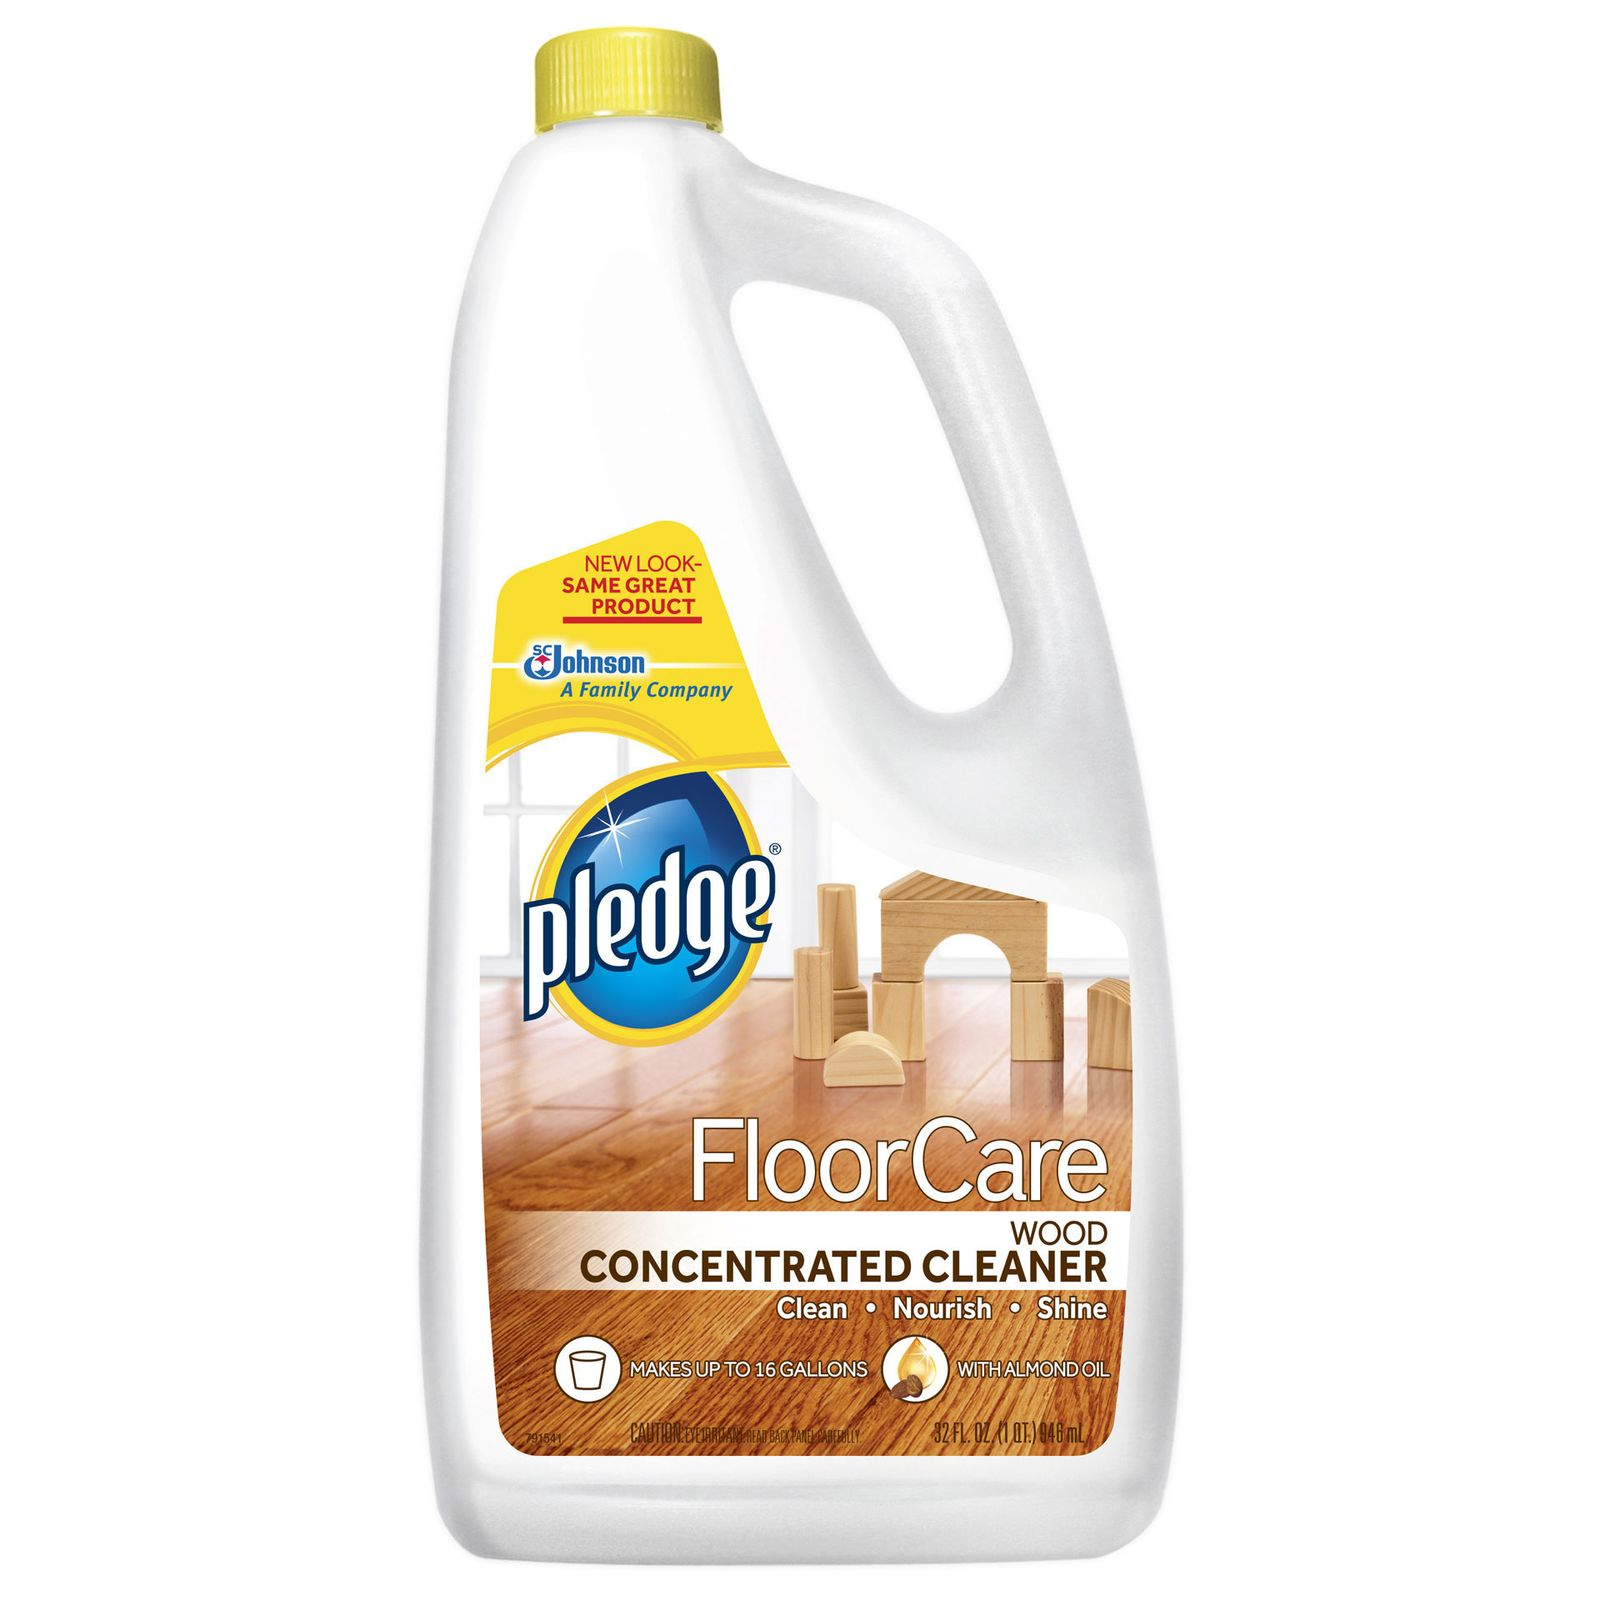 Pledge floorcare wood concentrated cleaner review for Hardwood floor cleaner